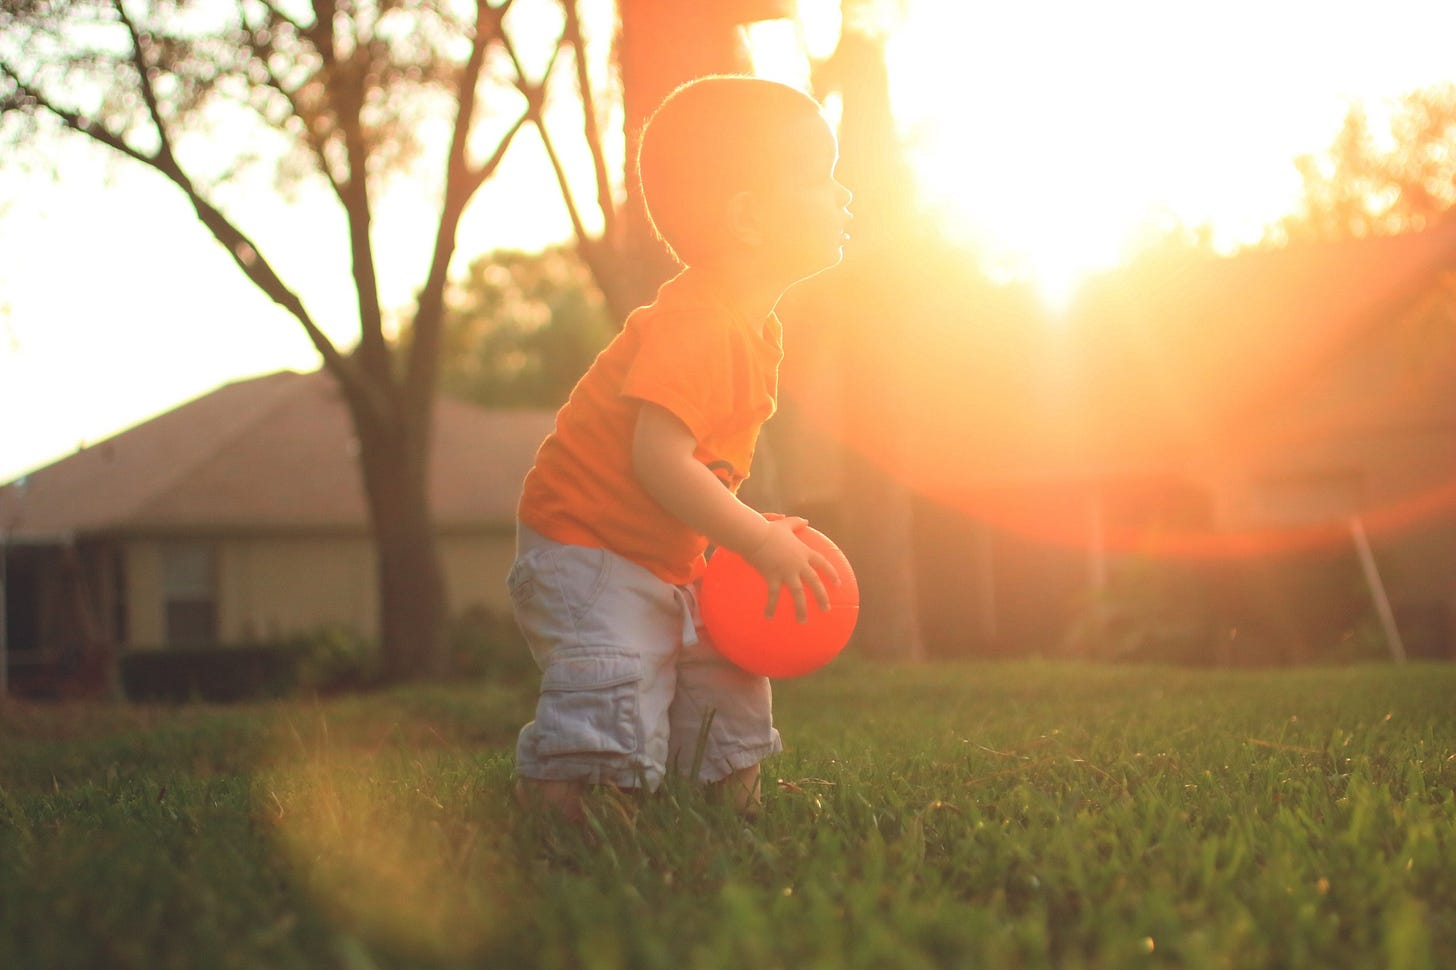 young boy playing ball in the yard for article by Larry G. Maguire